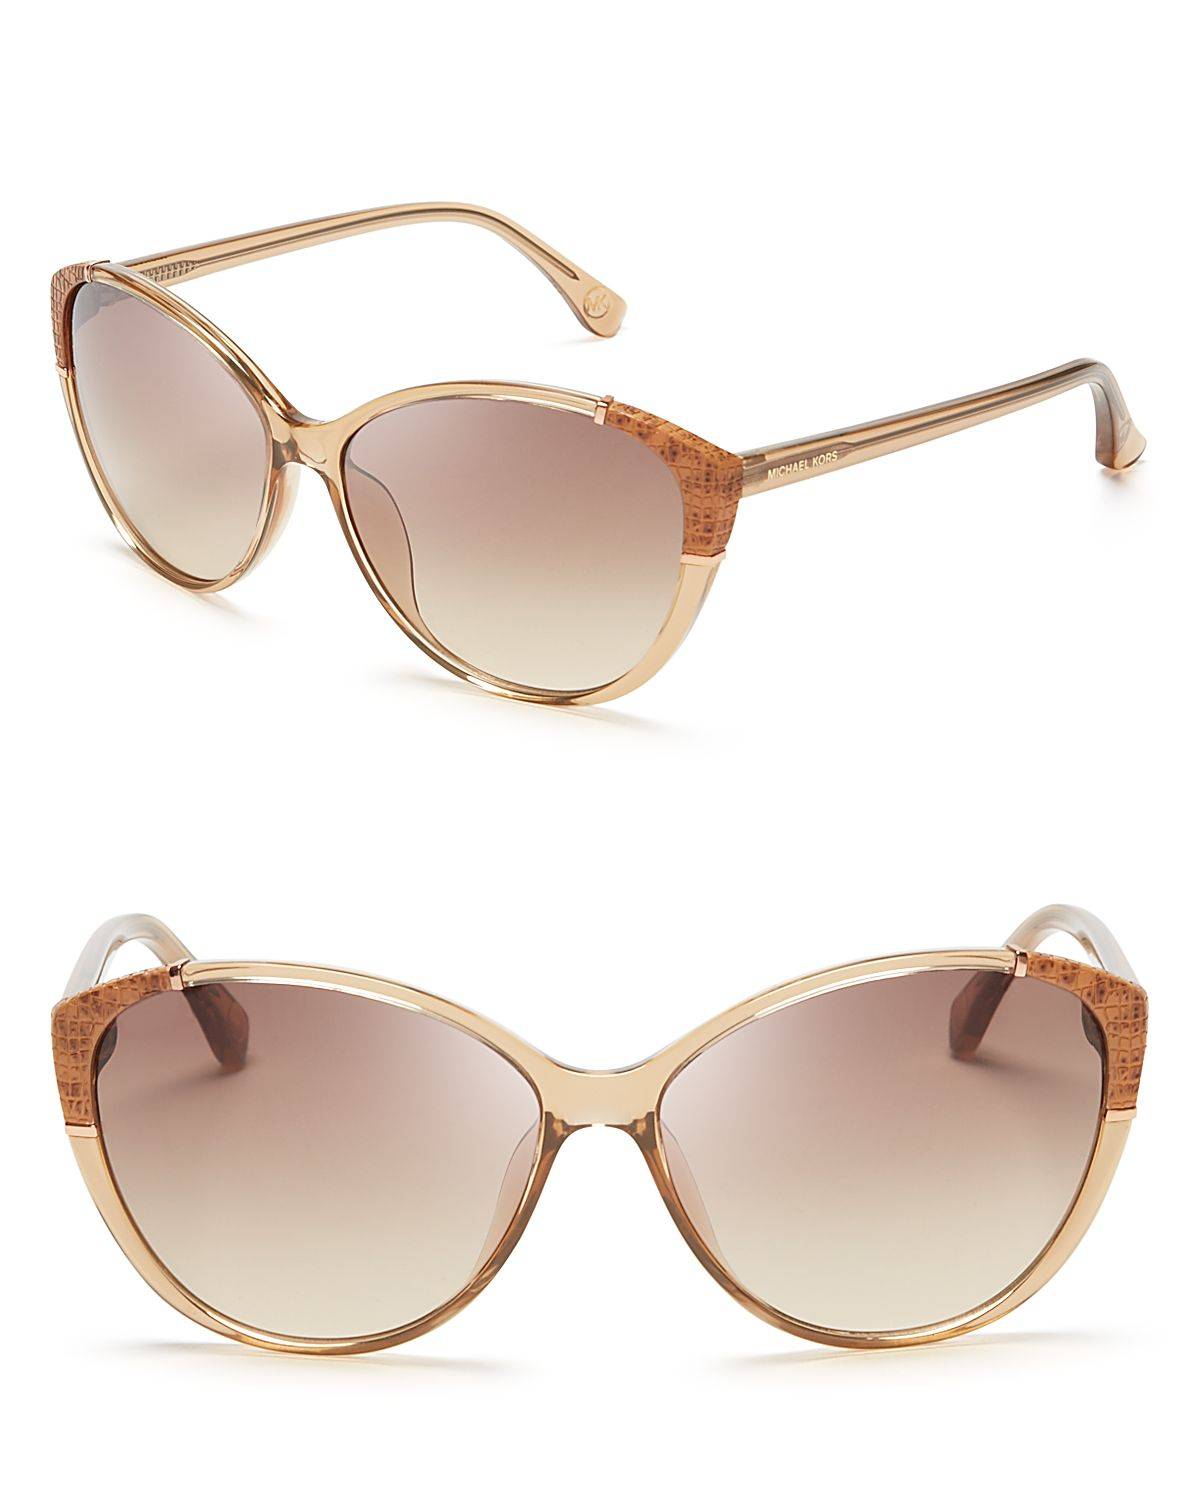 4326c5852f Gallery. Previously sold at  Bloomingdale s · Women s Cat Eye Sunglasses ...